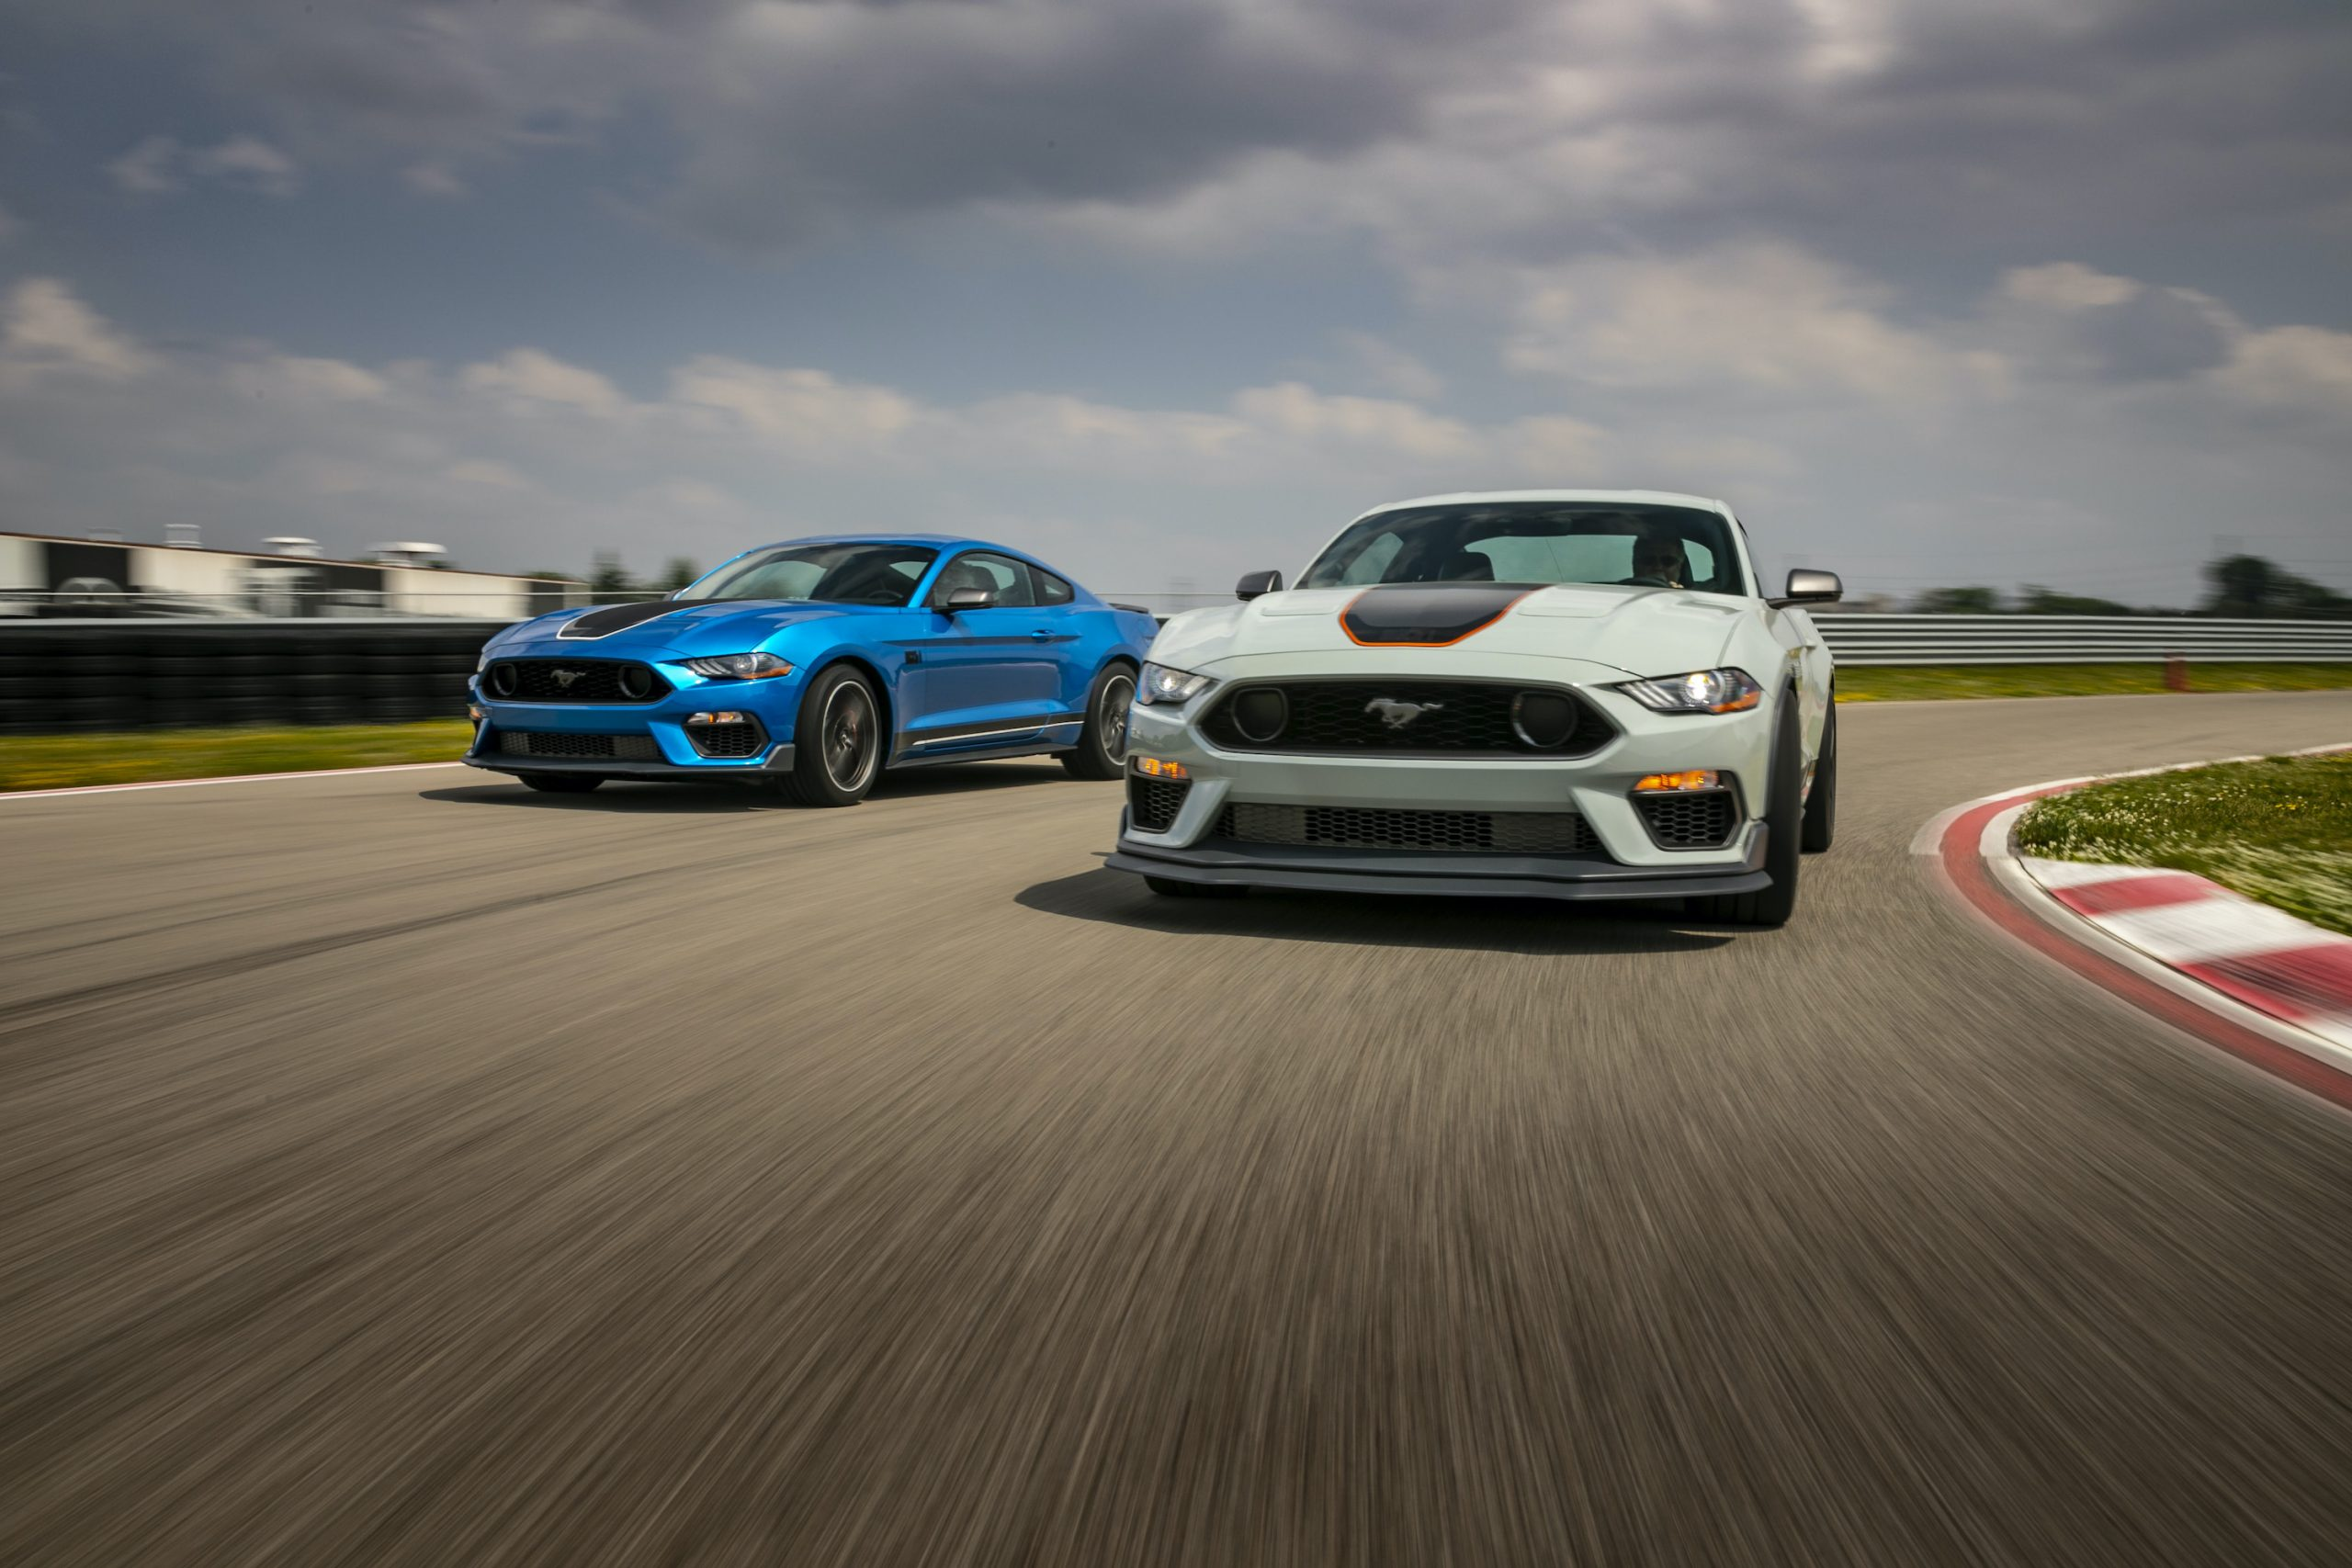 2021 Ford Mustang Mach 1 Cars action